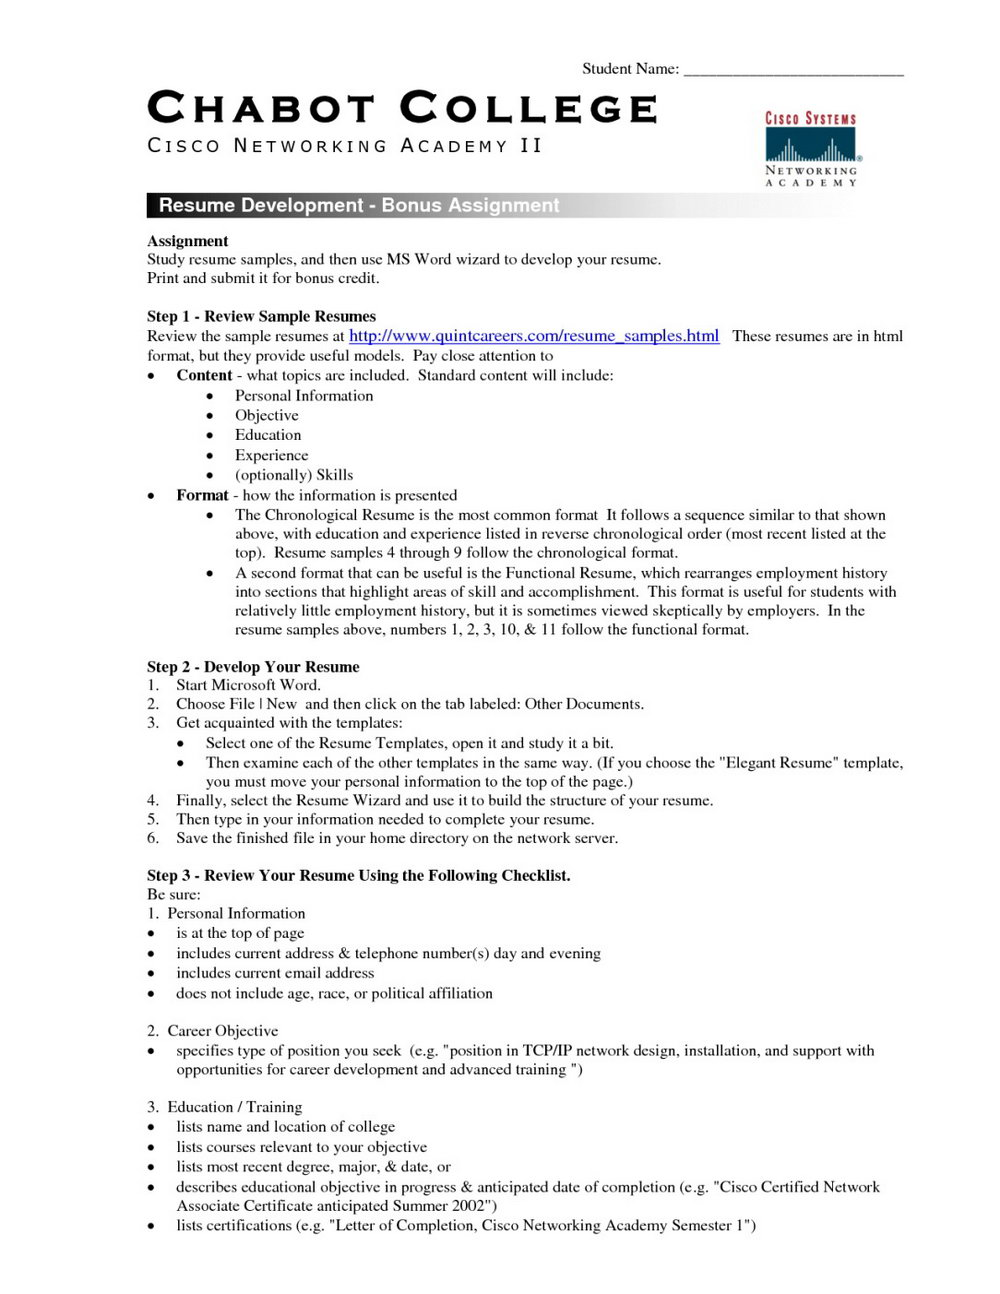 Resume Format Download In Ms Word In India